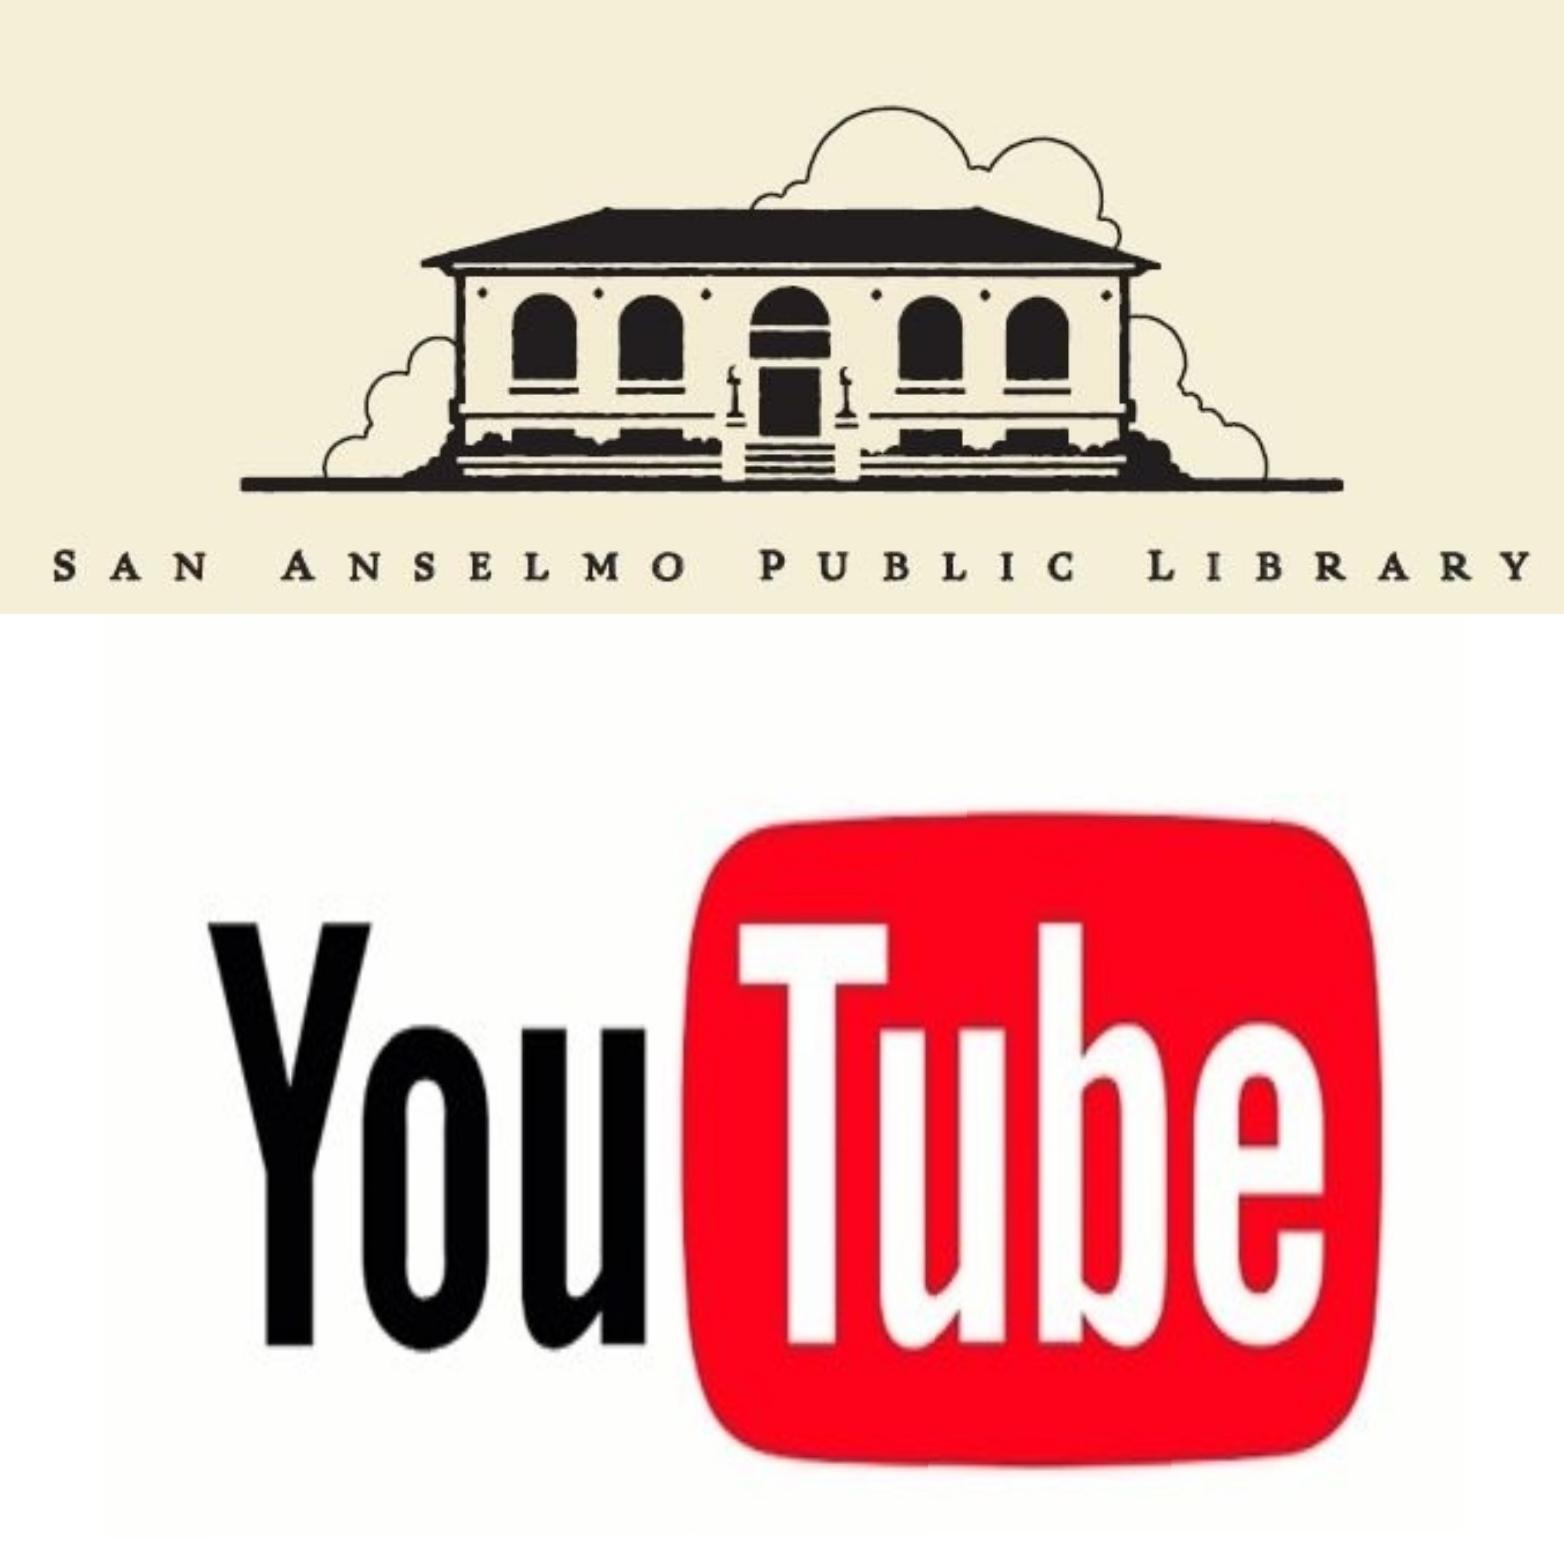 San Anselmo Library YouTube